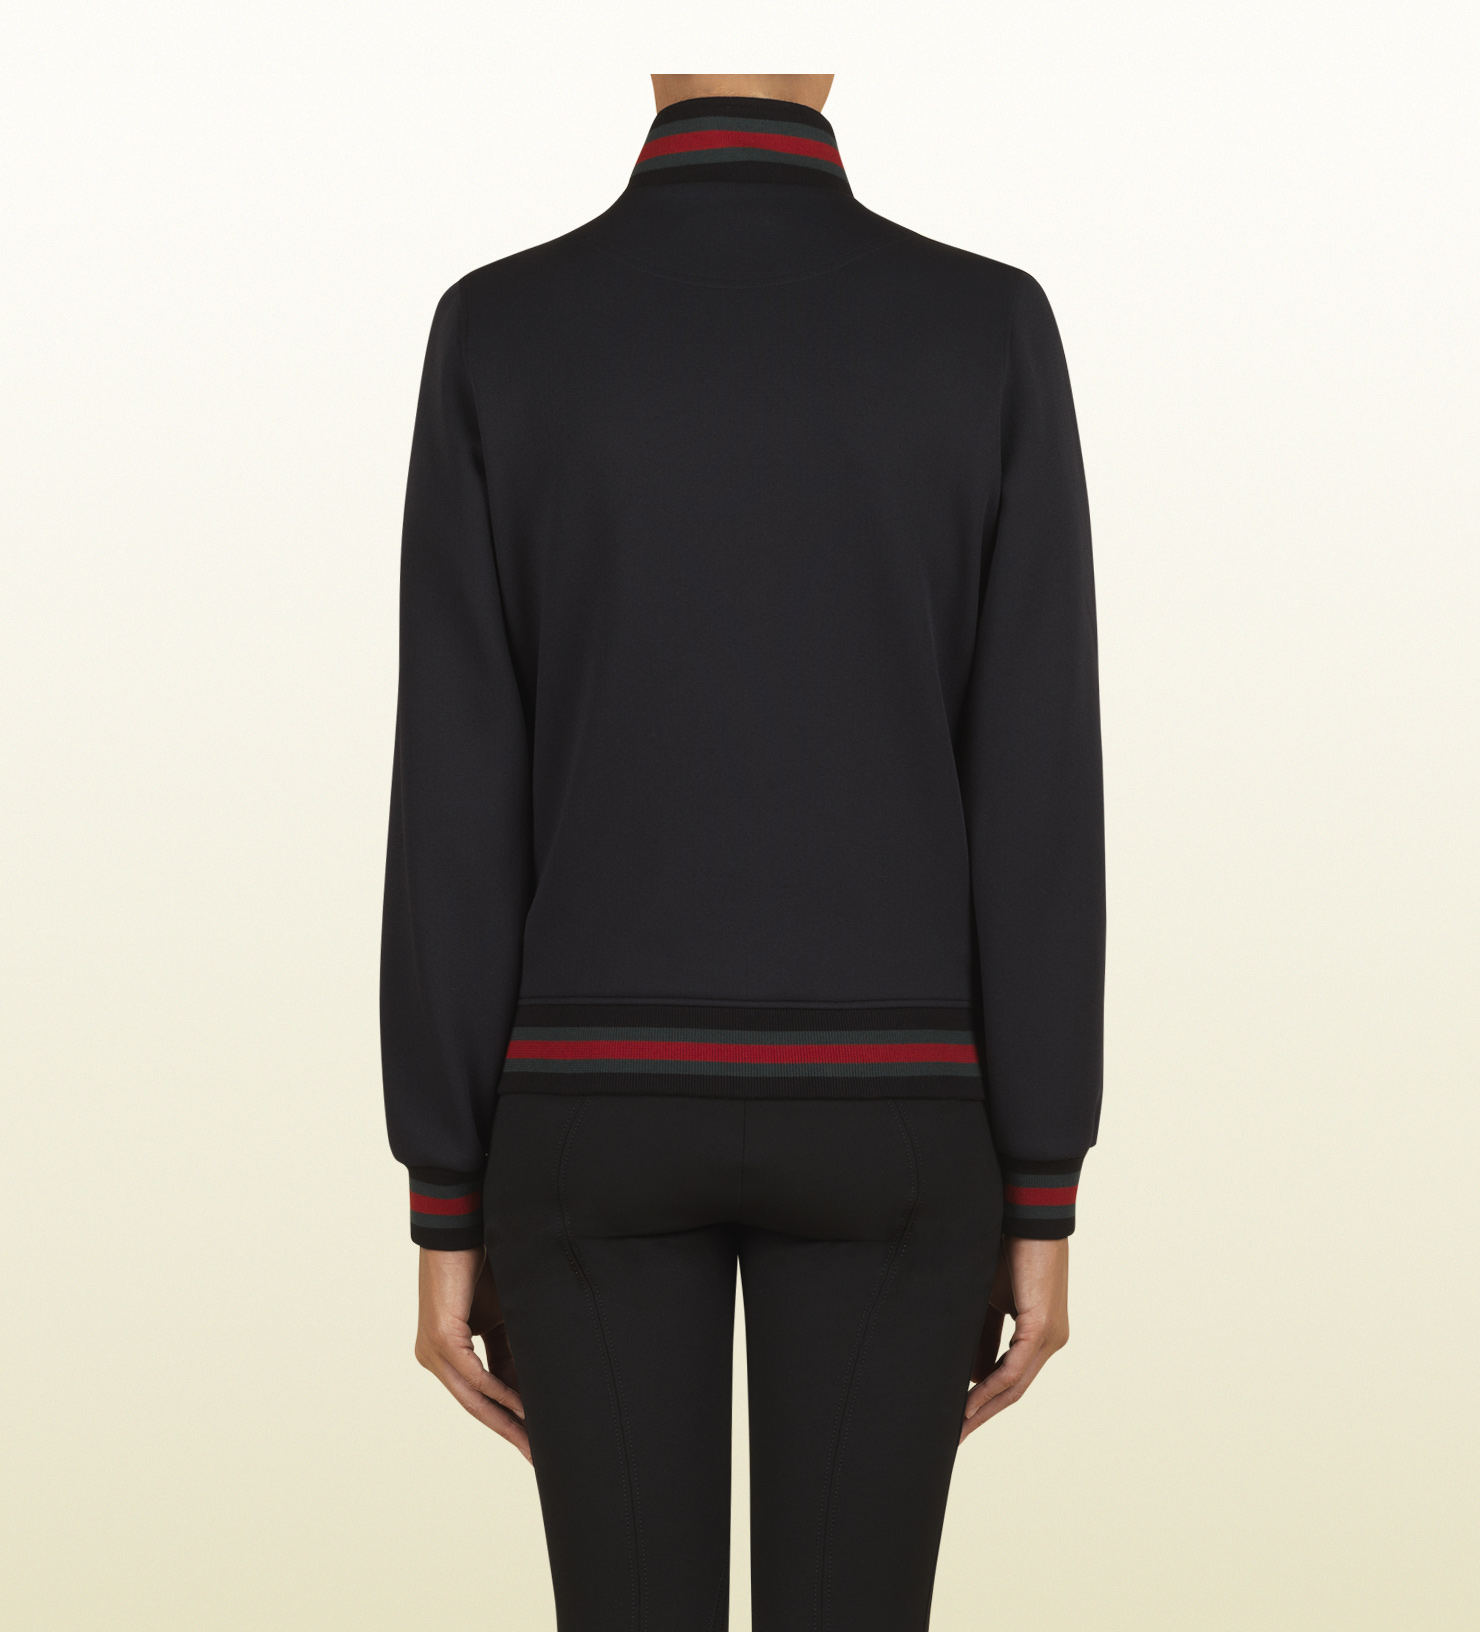 7a1445ece04 Lyst - Gucci Zipup Sweatshirt with Gucci Crest From Equestrian ...